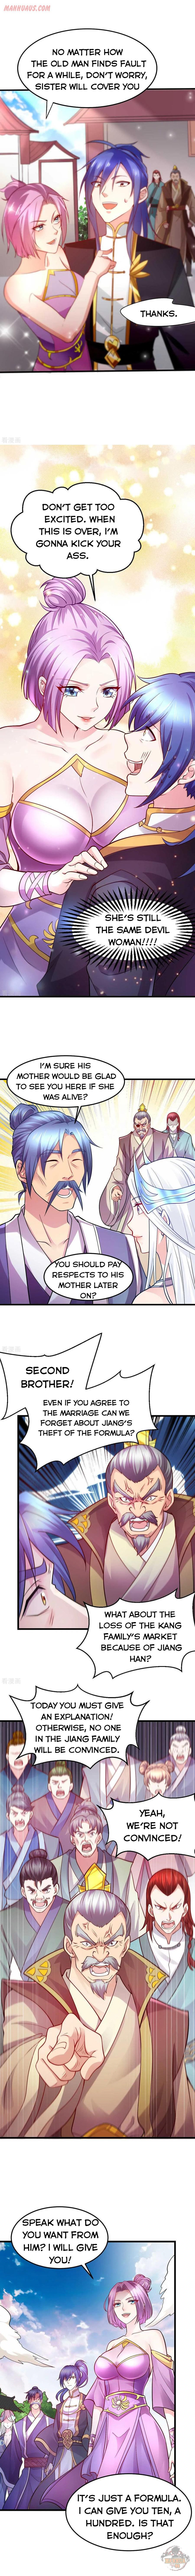 does your mother need son in low - chapter 27 - #3